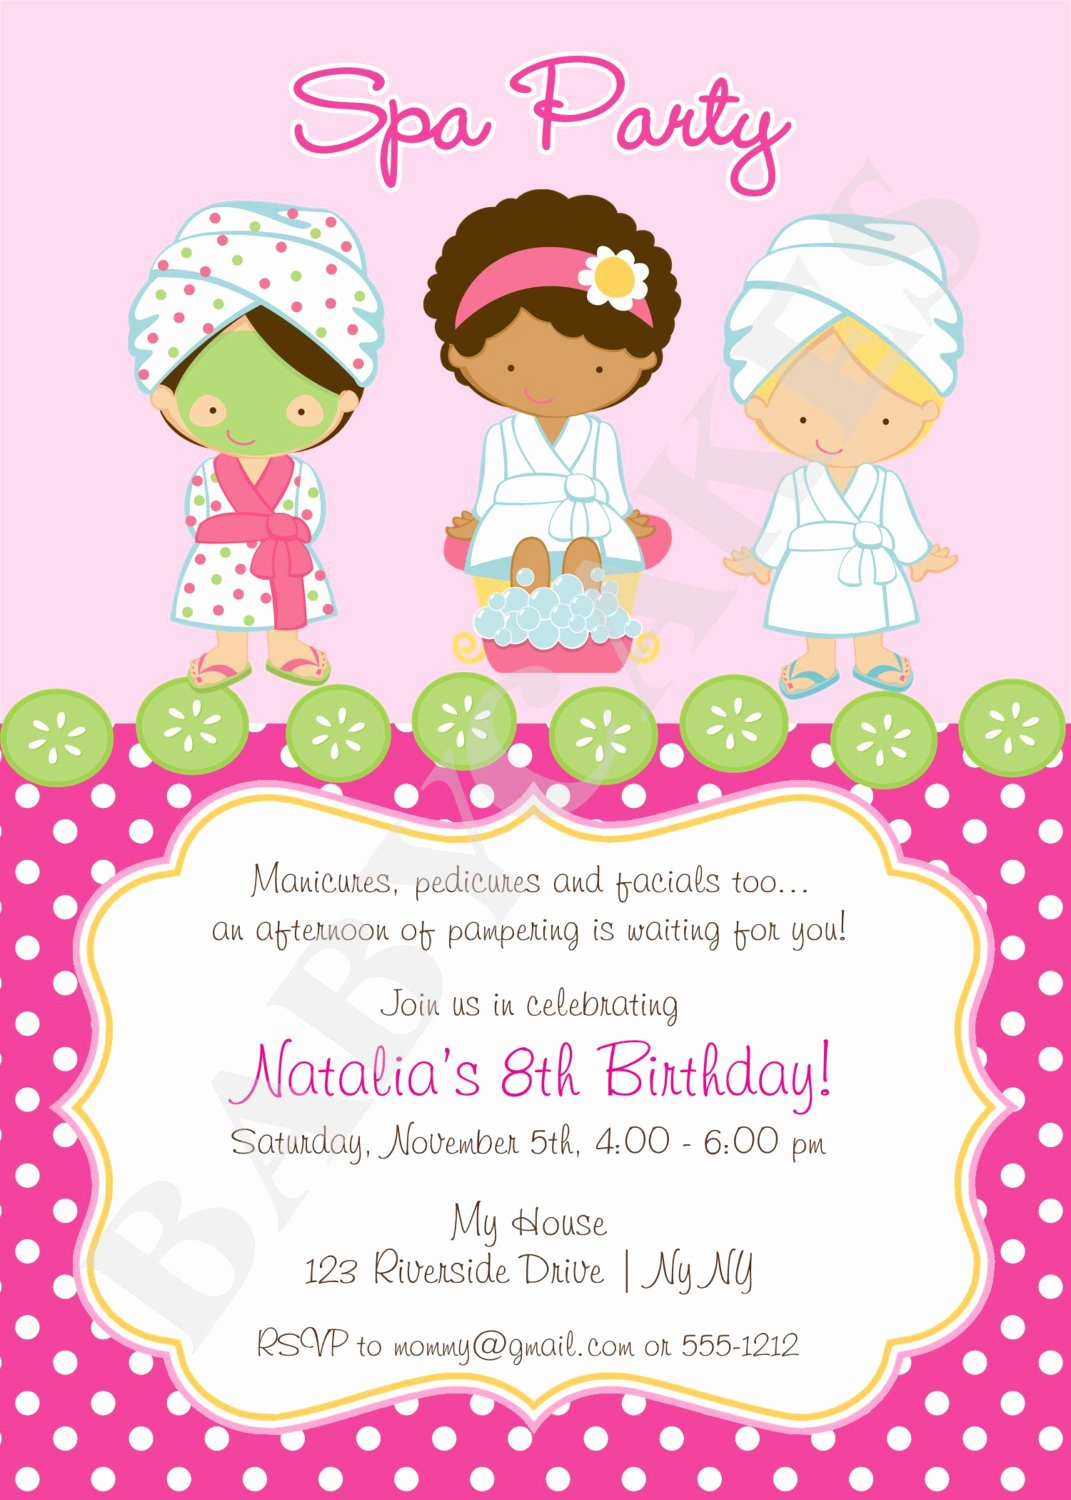 7 Fantastic Spa Party Invitations Free Printable